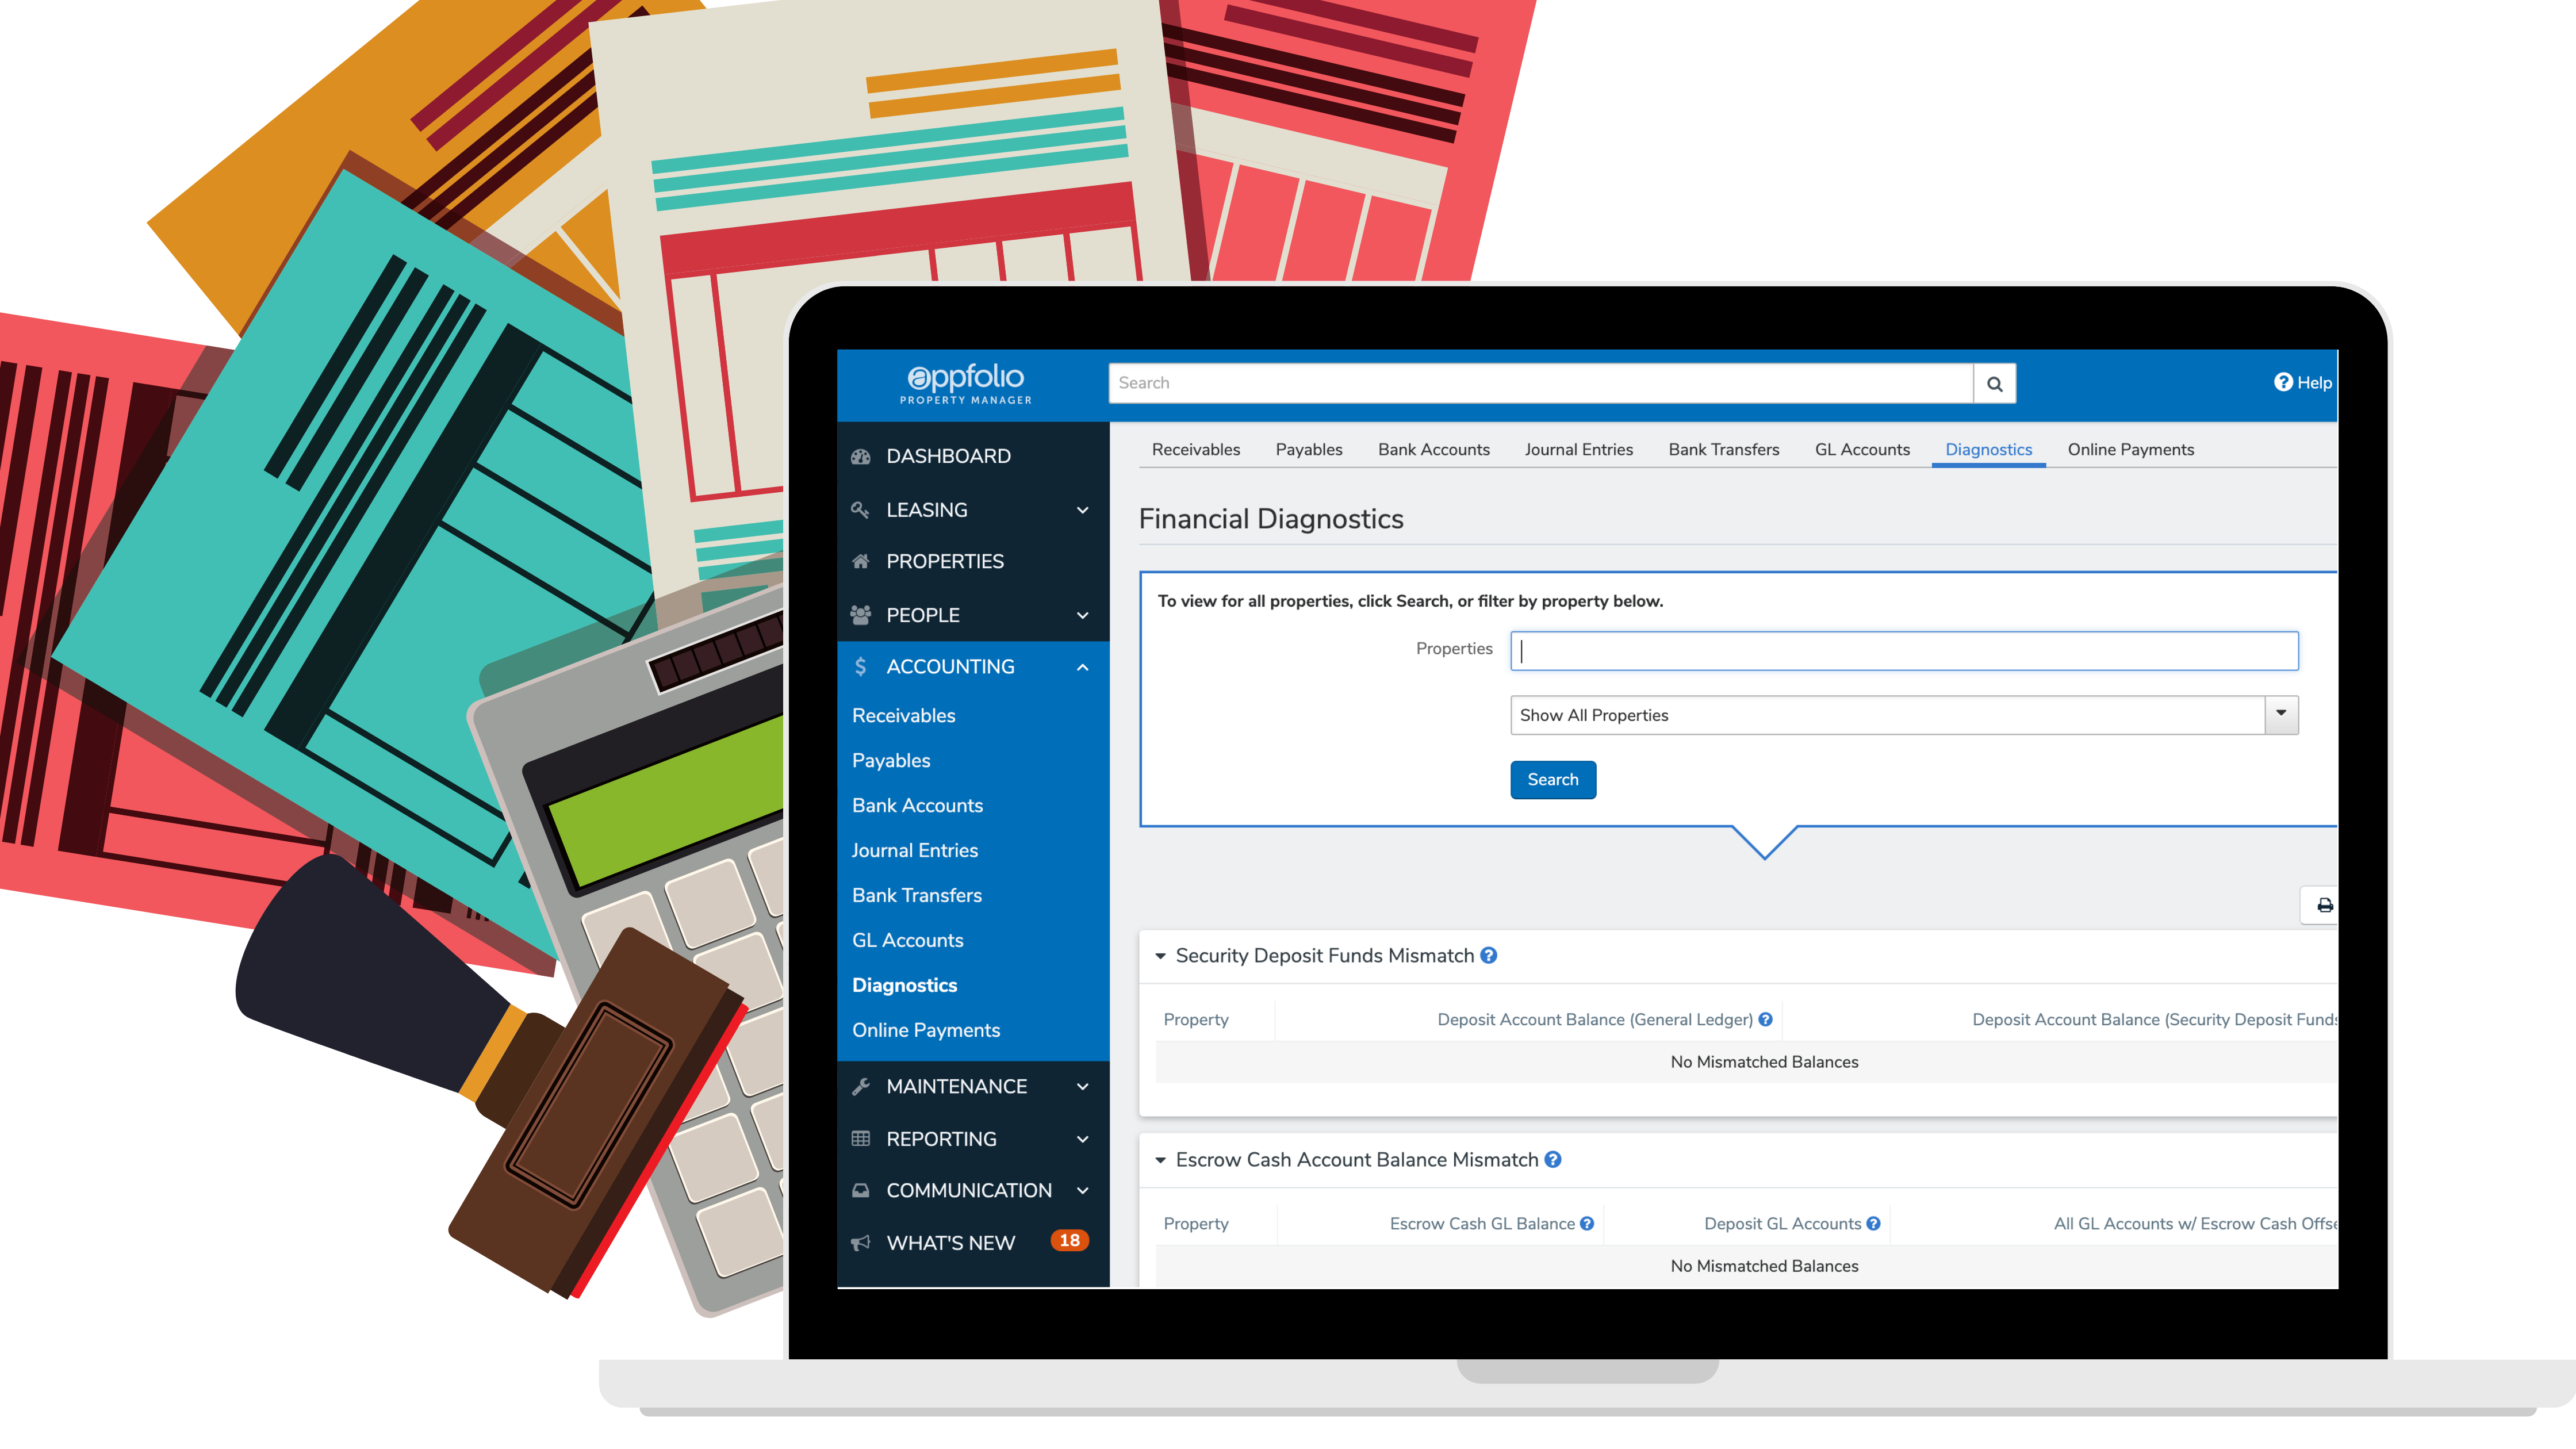 AppFolio: How To Avoid Issues On Your Diagnostics Report